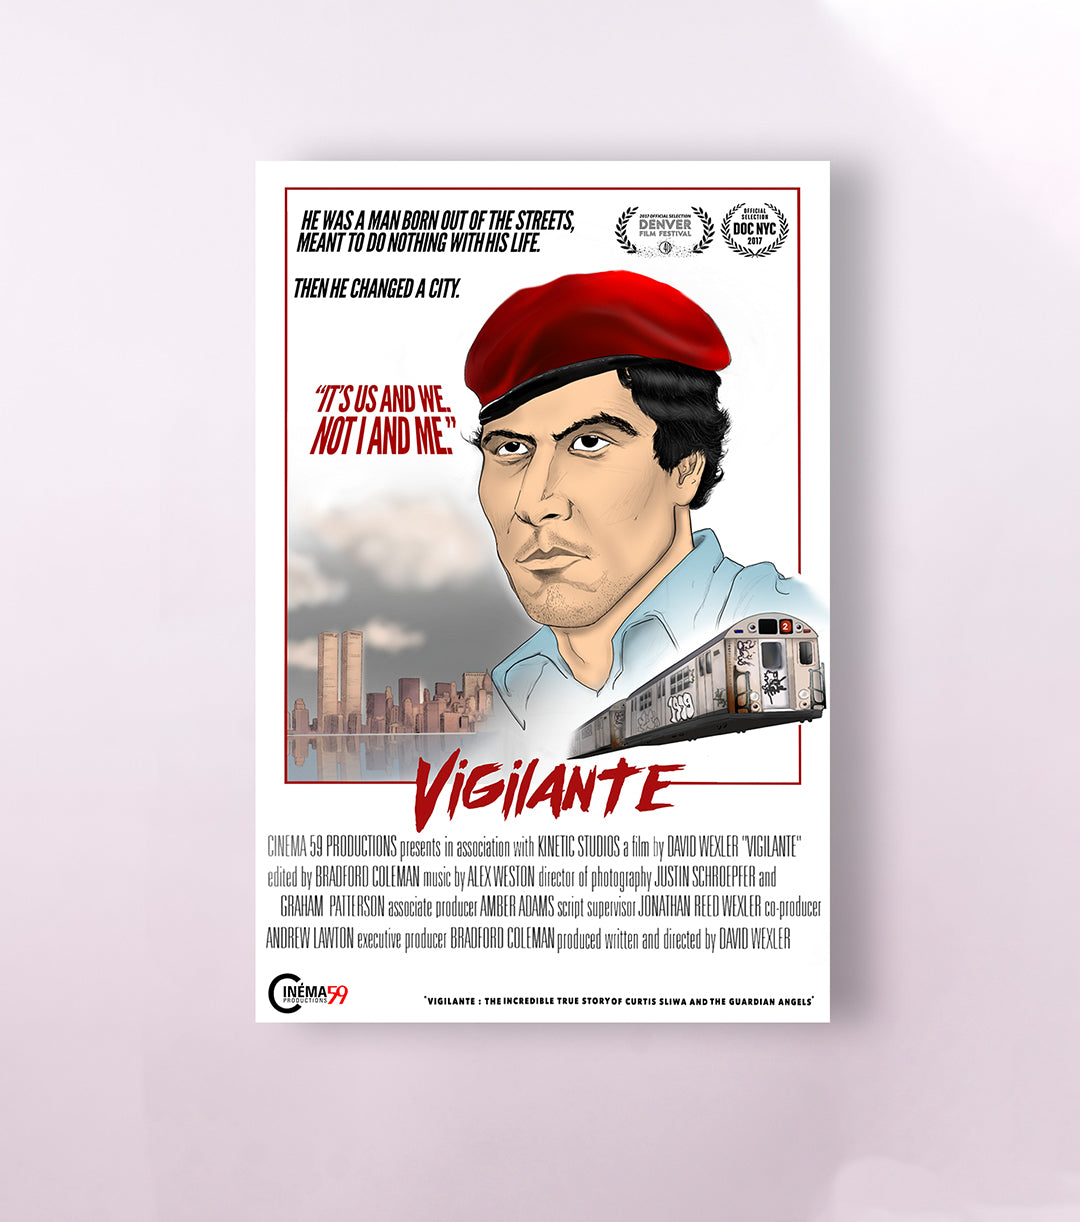 Vigilante - The Incredible True Story of the Guardian Angels - DOCUMENTARY